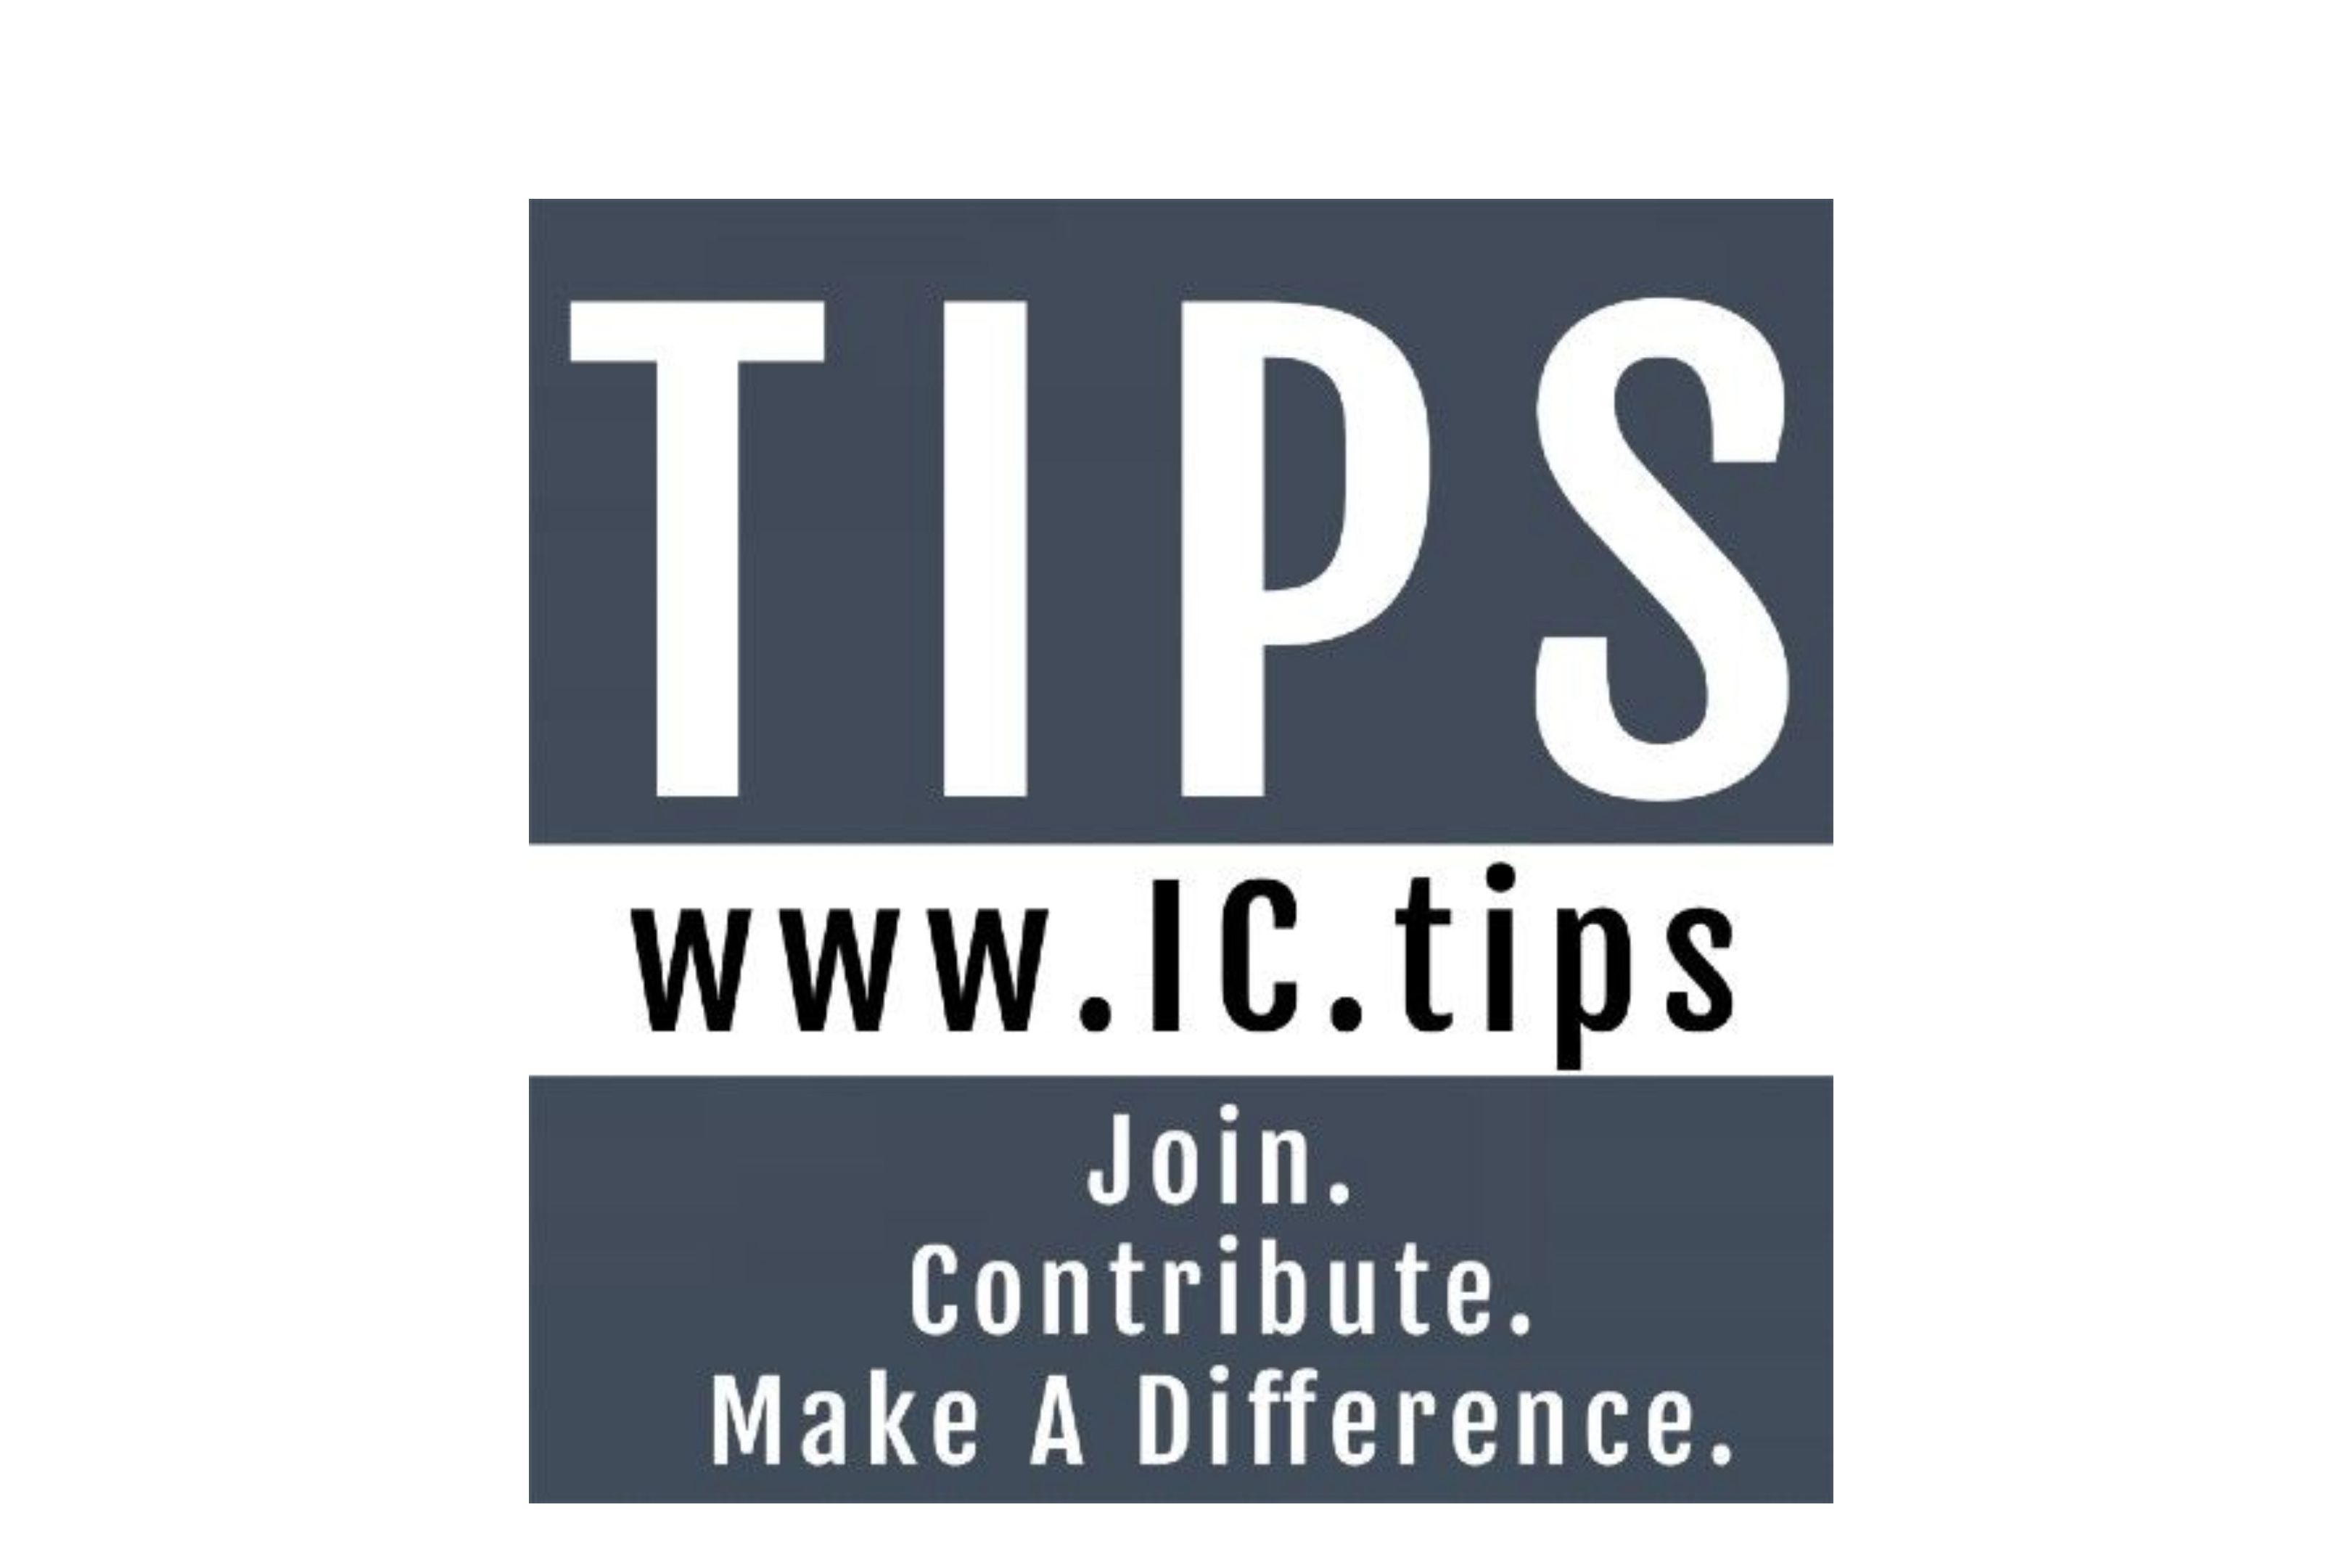 TIPS: The Infection Prevention Strategy logo